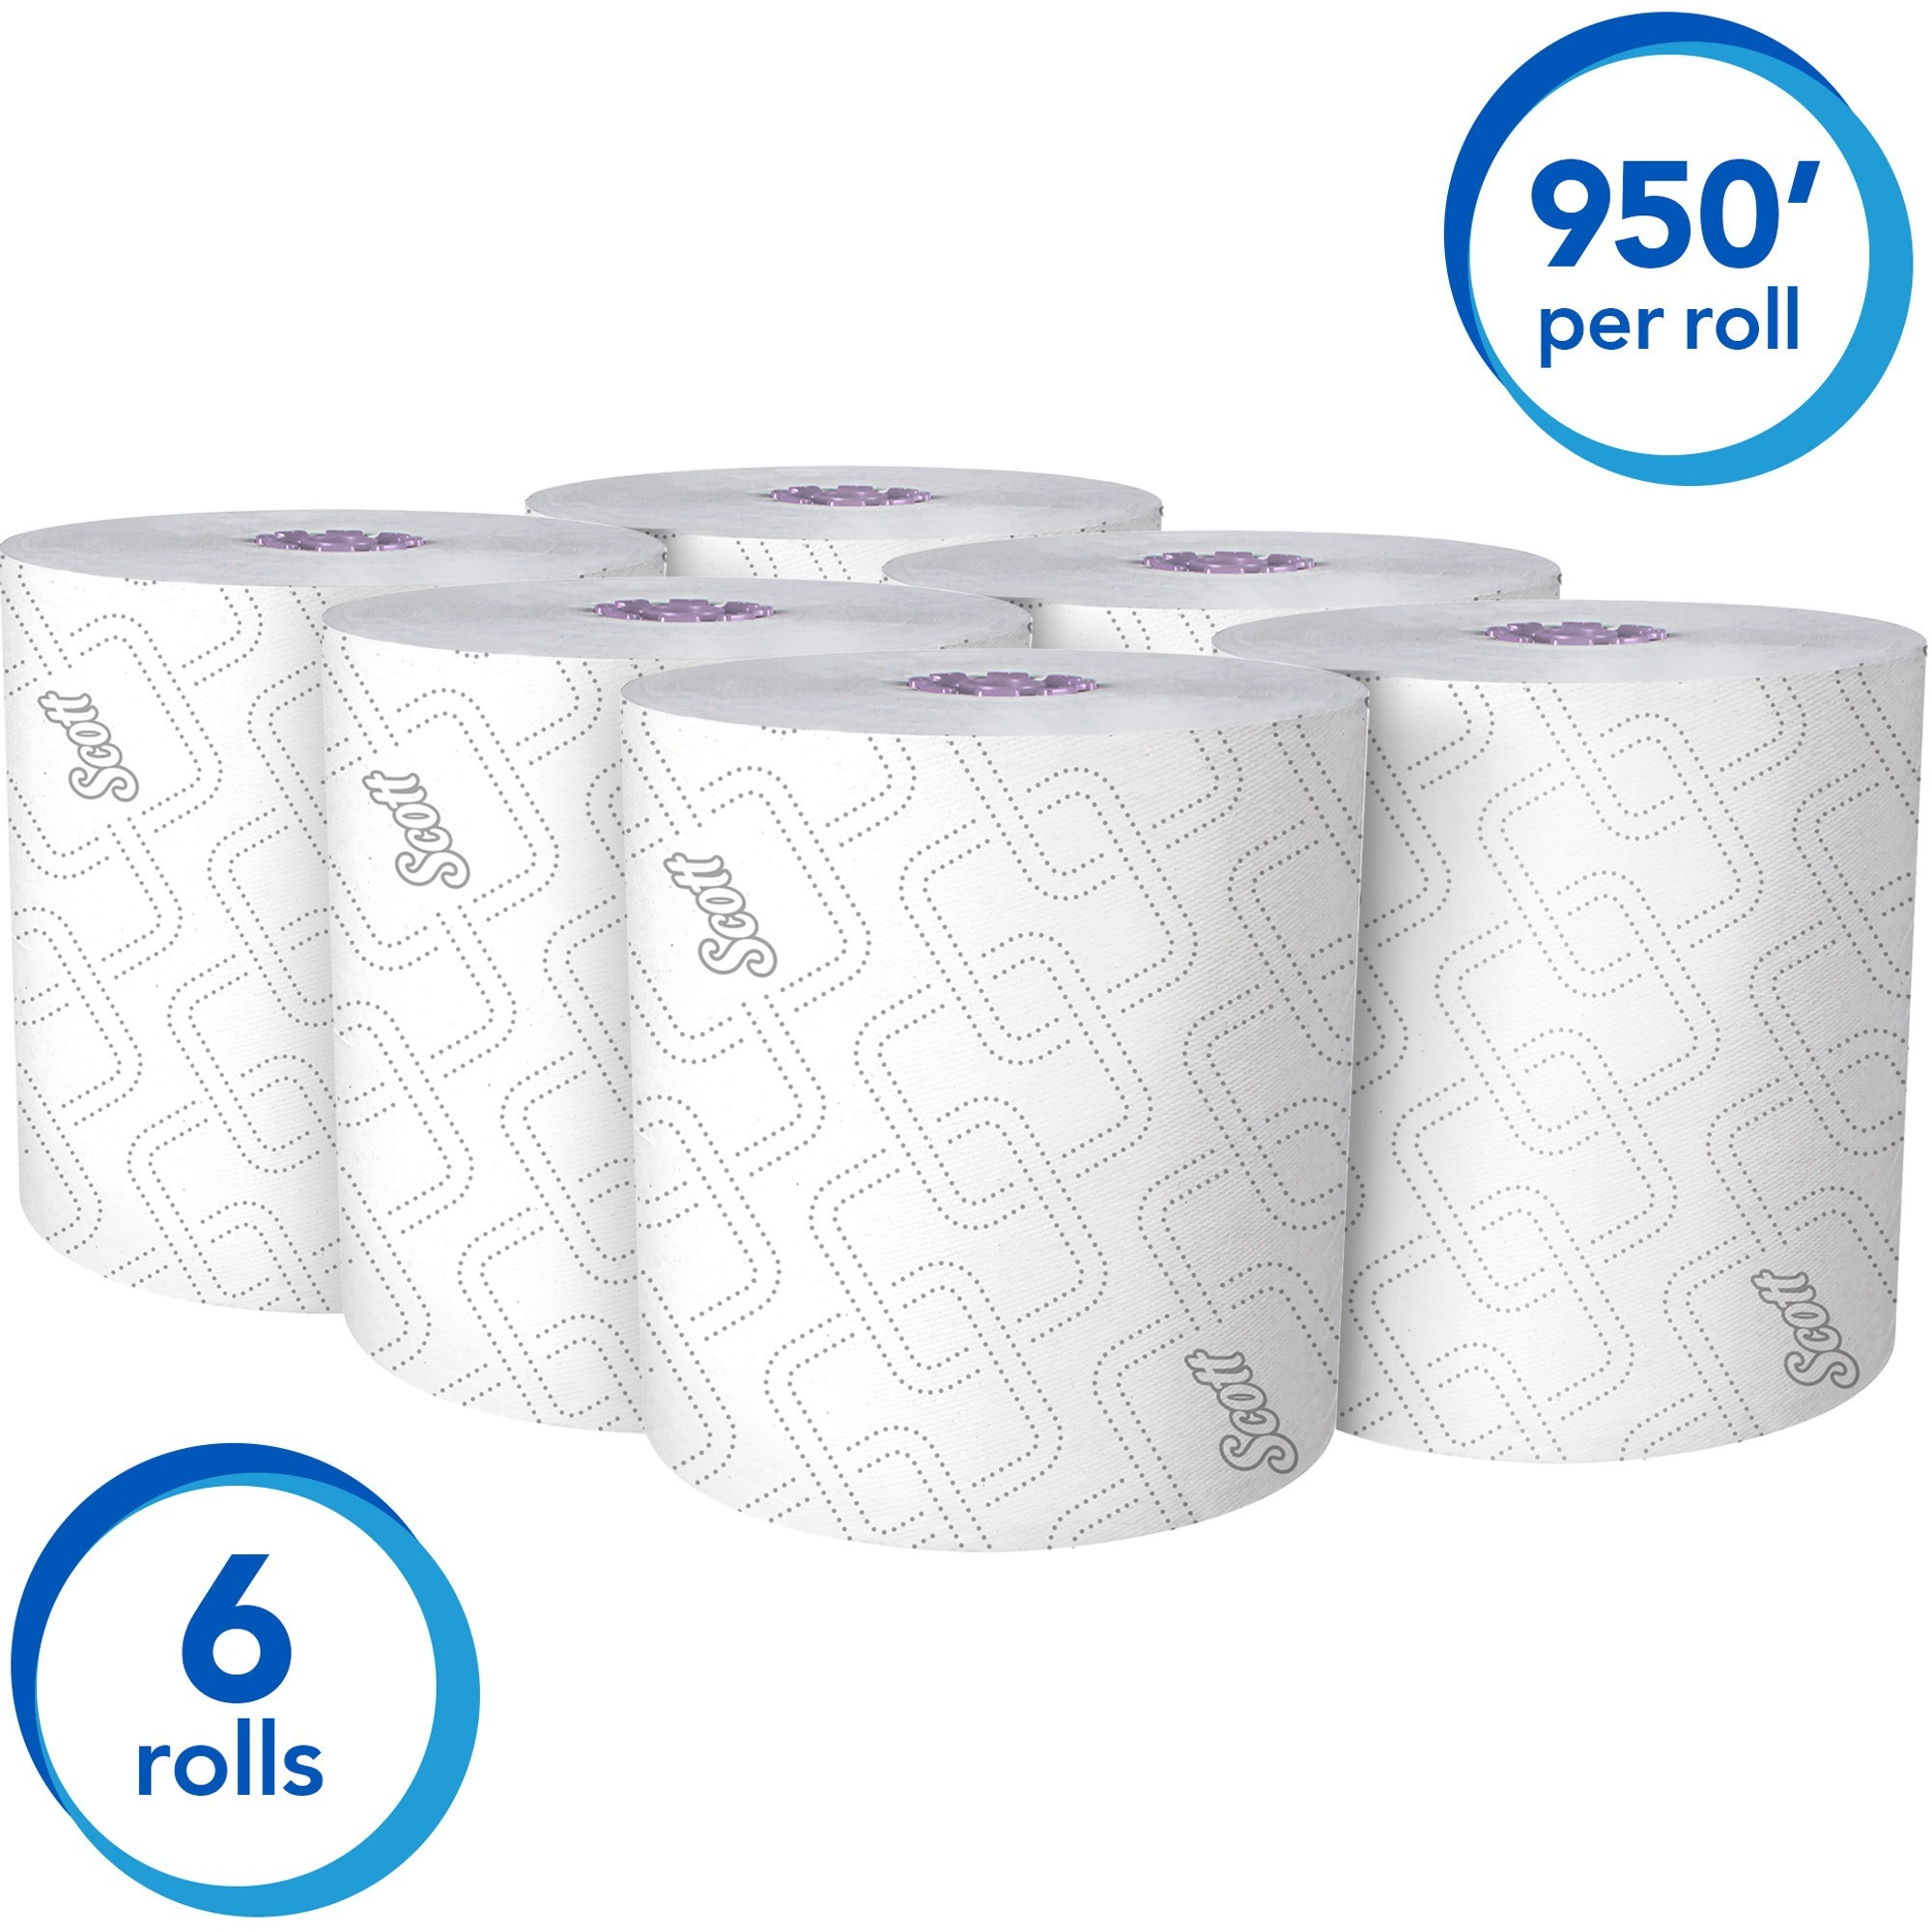 Kimberly-Clark Professional Essential High-Capacity Hard Roll Paper Towels for Scott Essential Dispenser